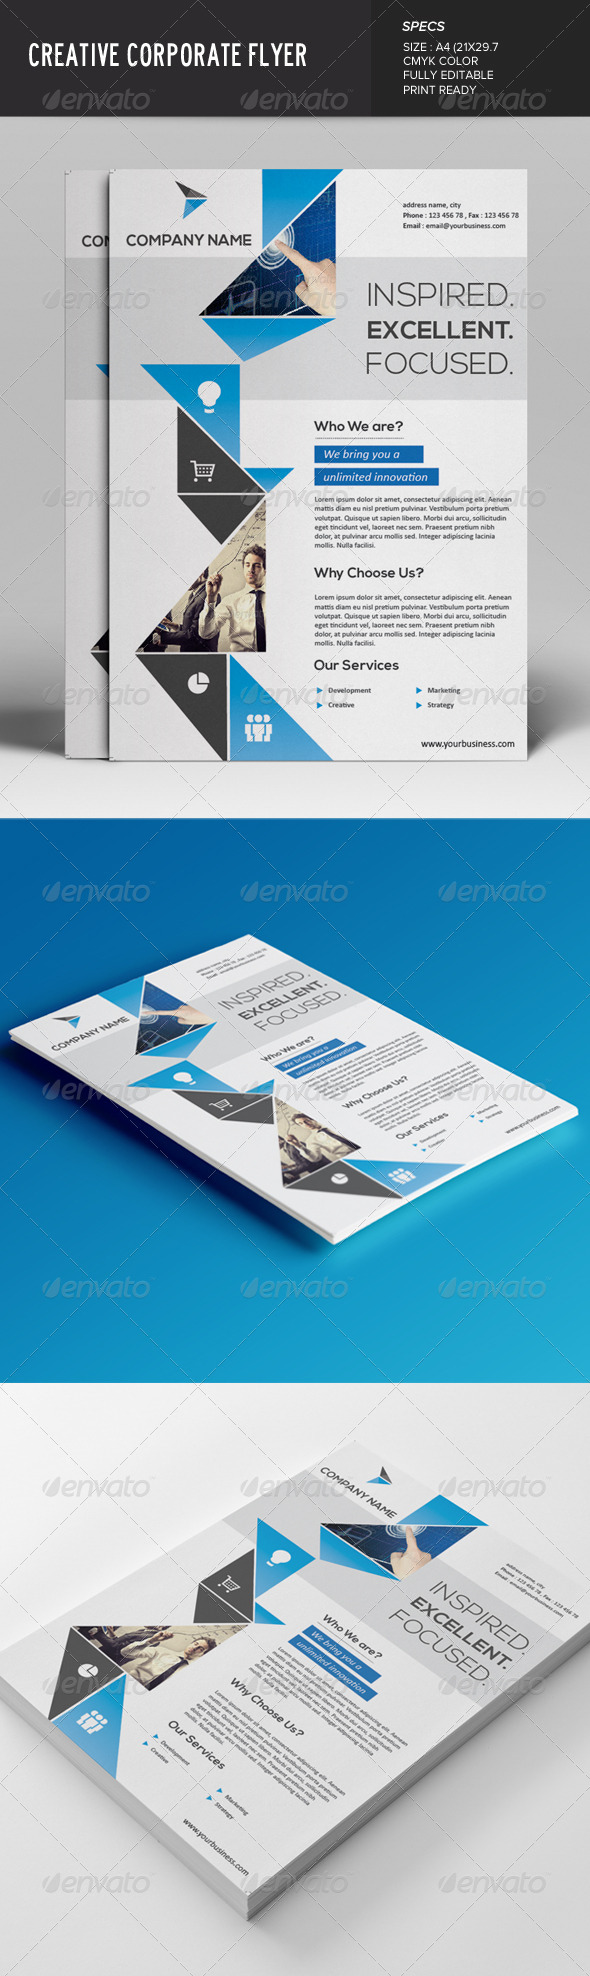 GraphicRiver Creative Corporate Flyer 7619364